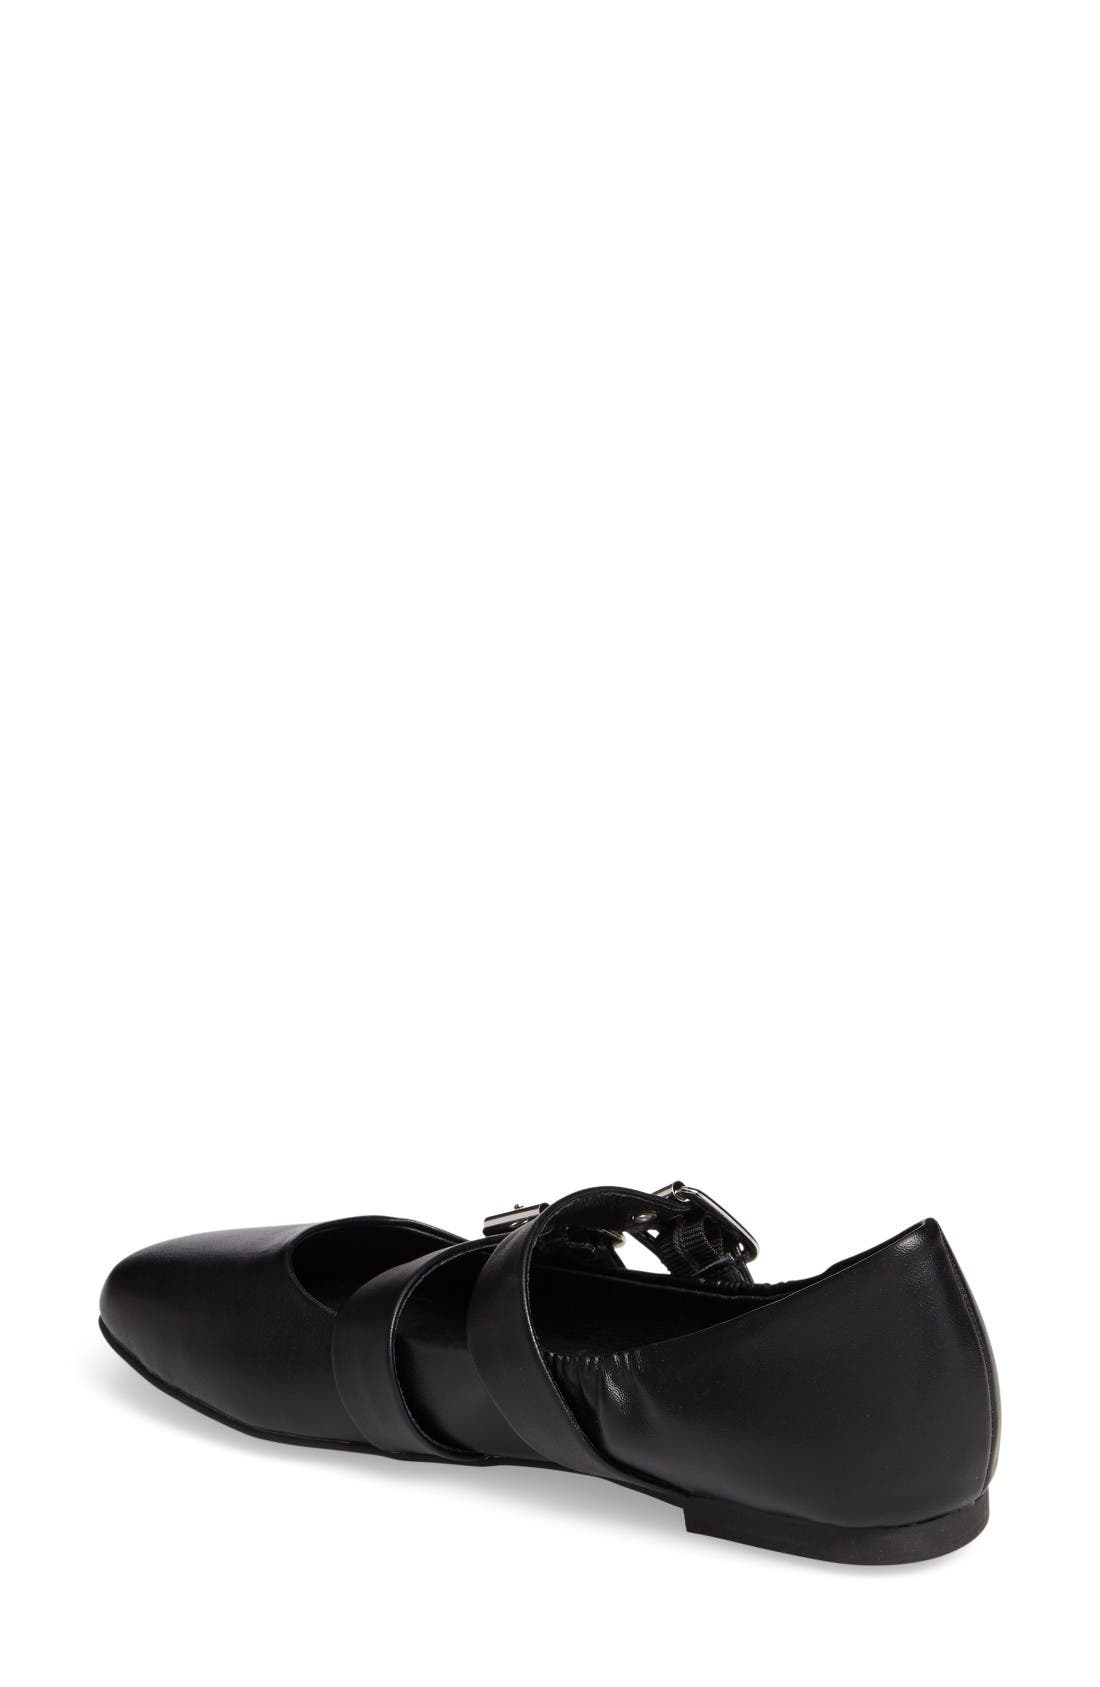 Alternate Image 2  - Steve Madden Spirits Buckle Flat (Women)